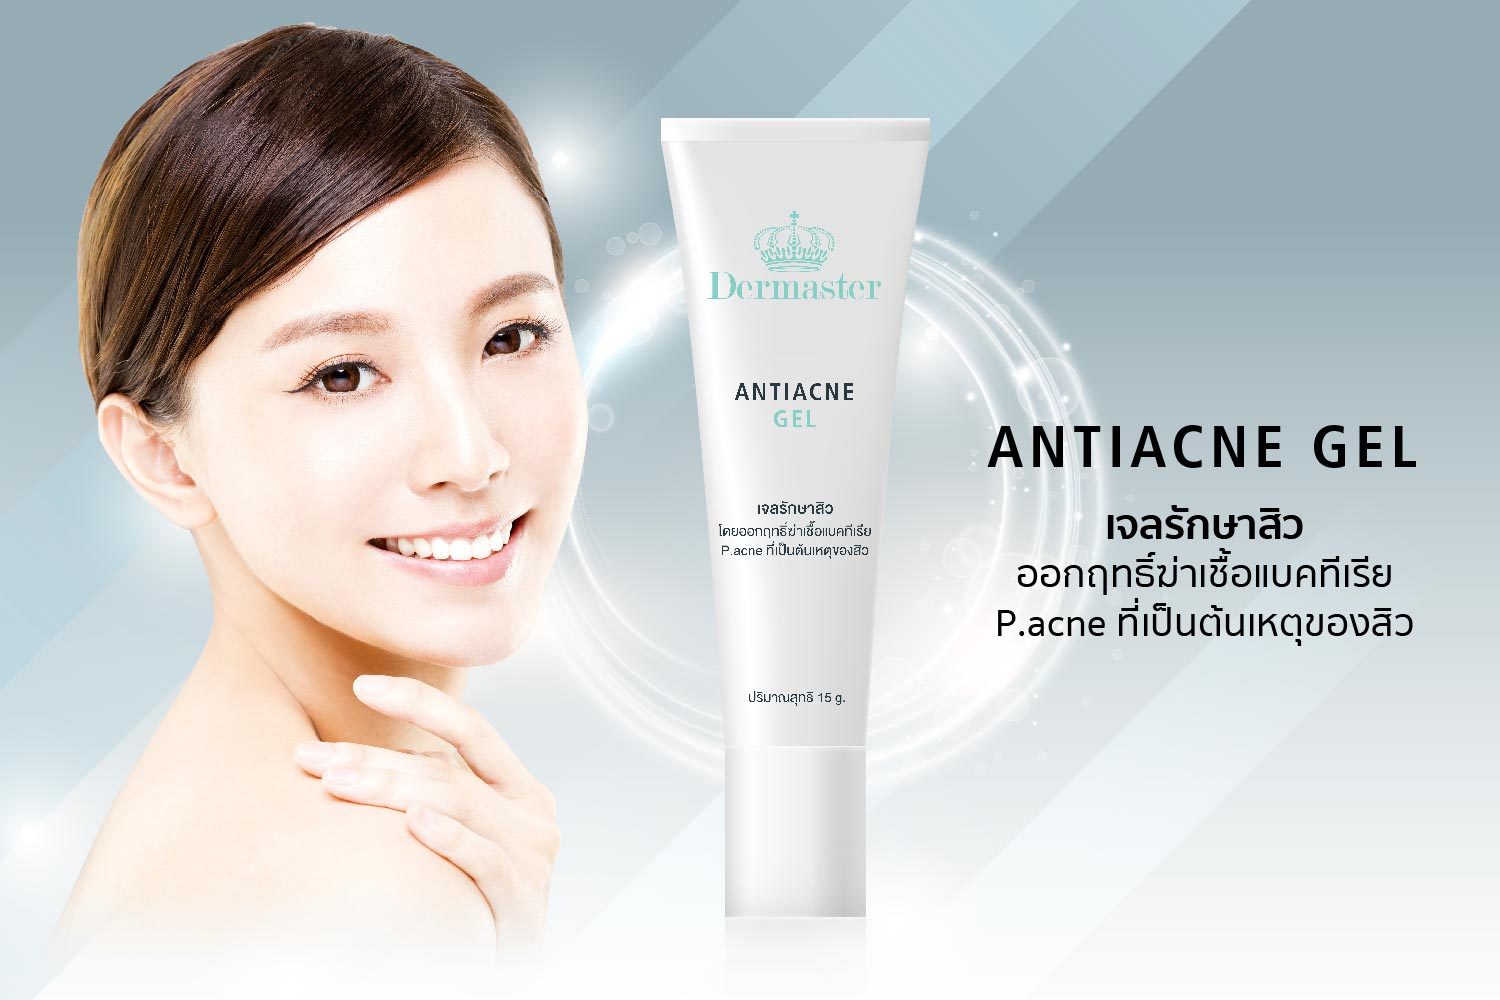 skin-care-Antiacne-gel-1